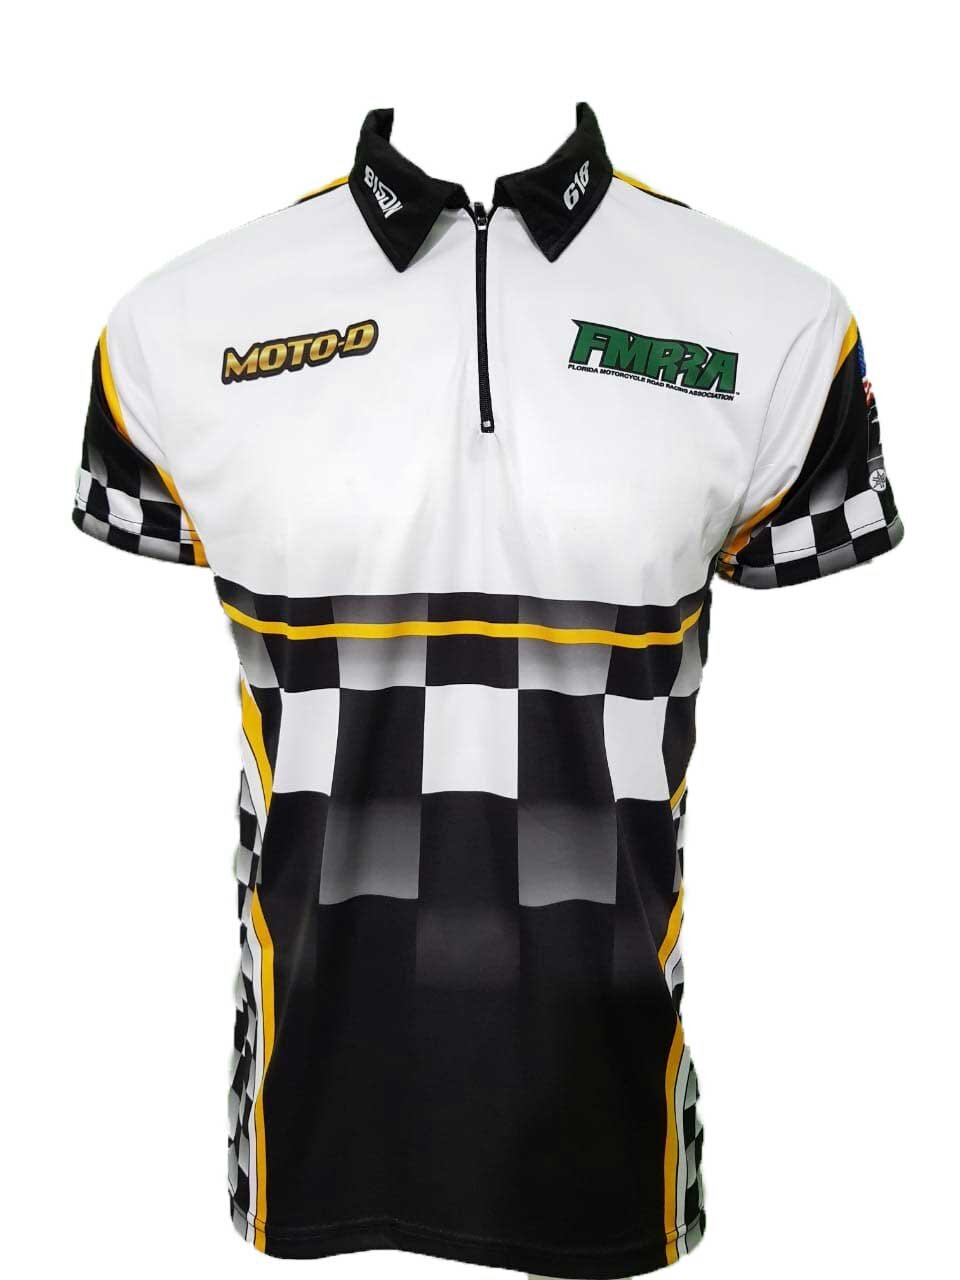 Bison Track Motorcycle Racing Sublimated Pit Shirts